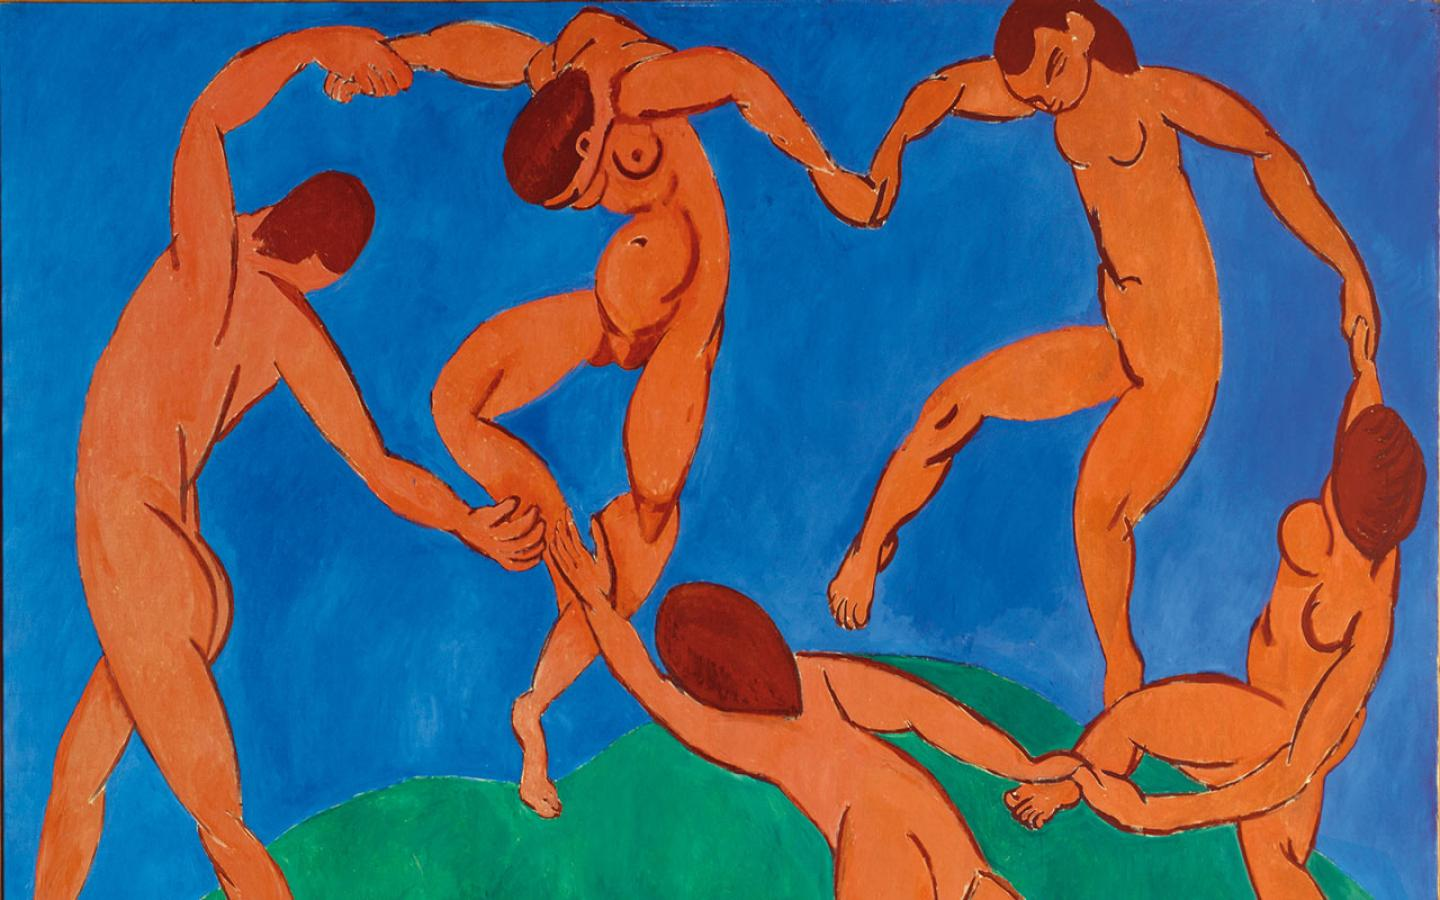 Henri Matisse - The Dance Wallpaper #2 1440 x 900